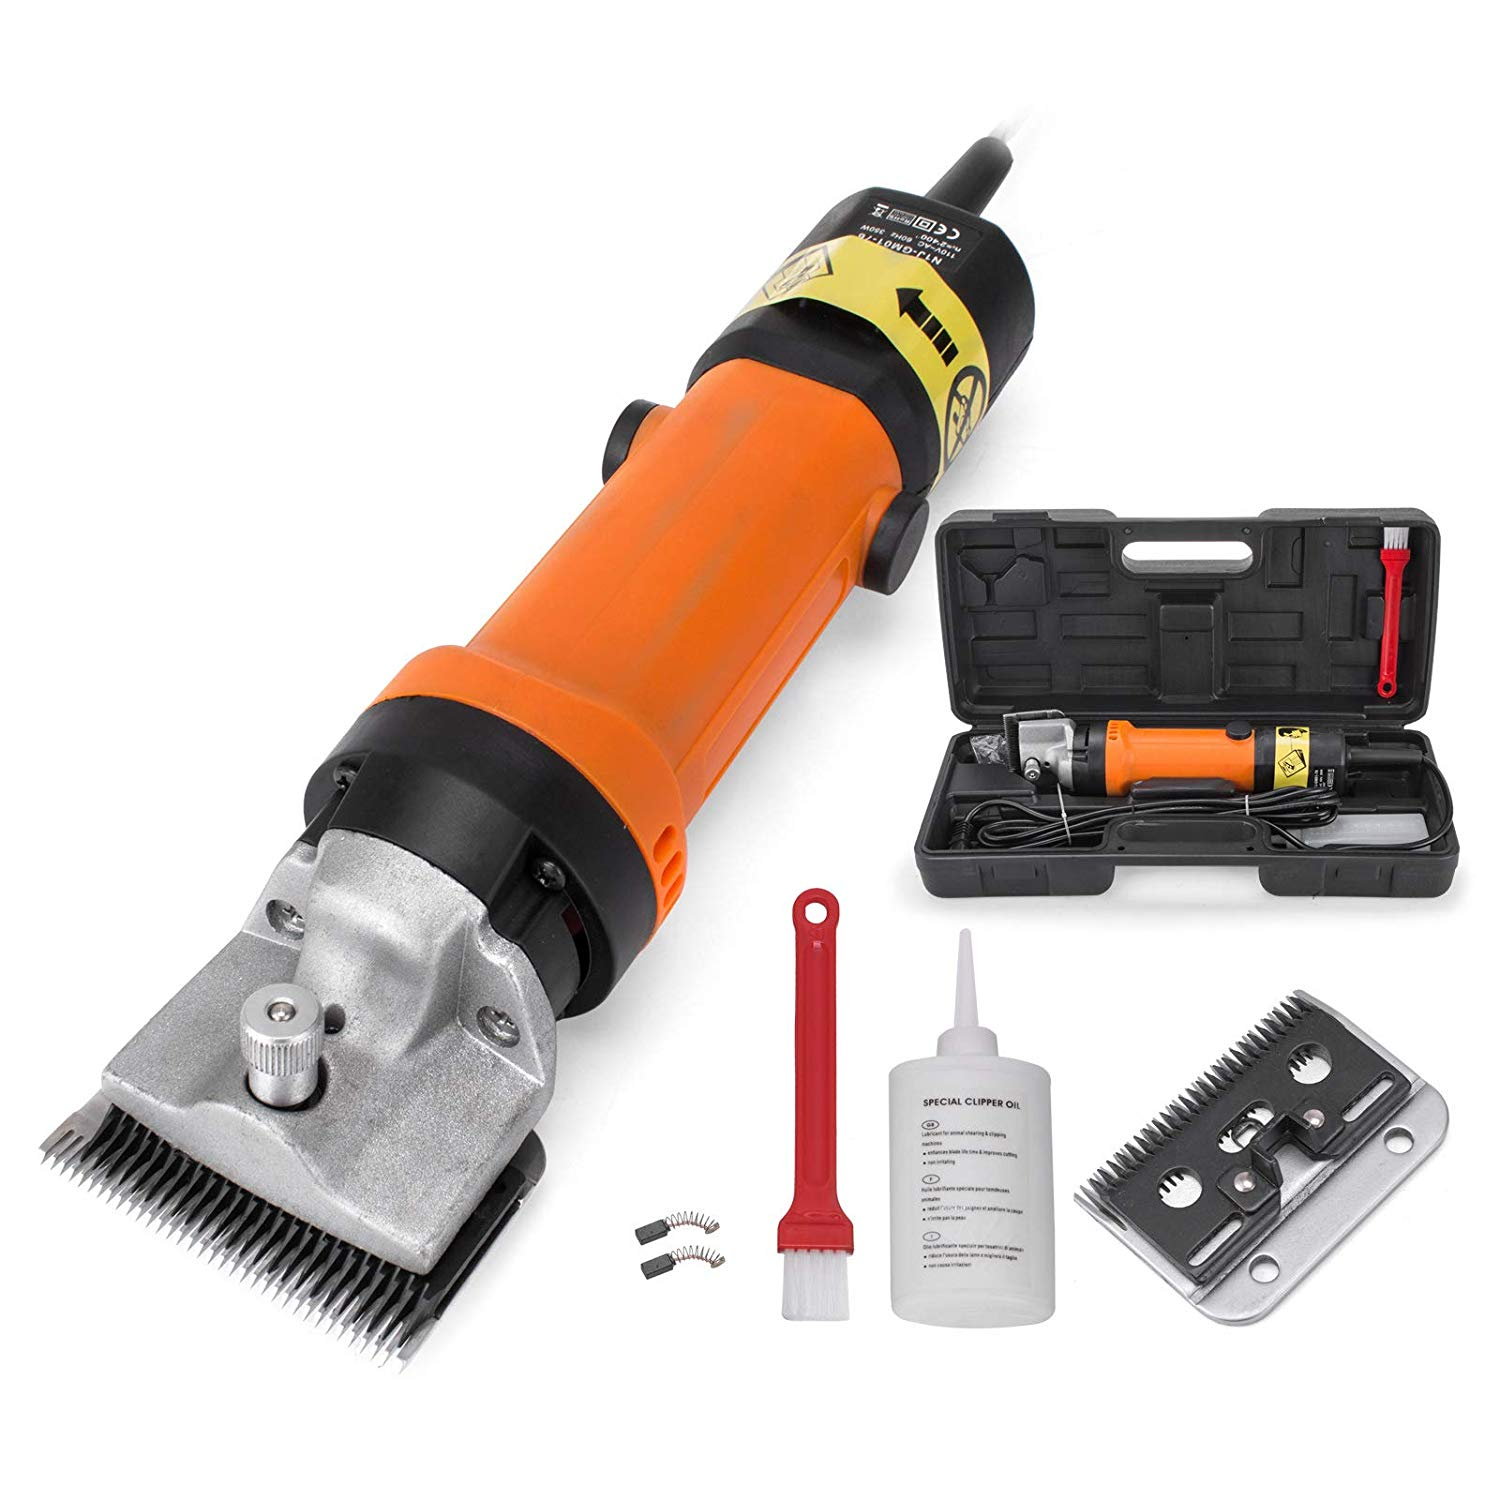 0c5ca8b728c Get Quotations · Happybuy Electric Horsehair Clipper 350W Horsehair Shear  Yellow Electric Shear Clipper with 5m Cable Animal Hair